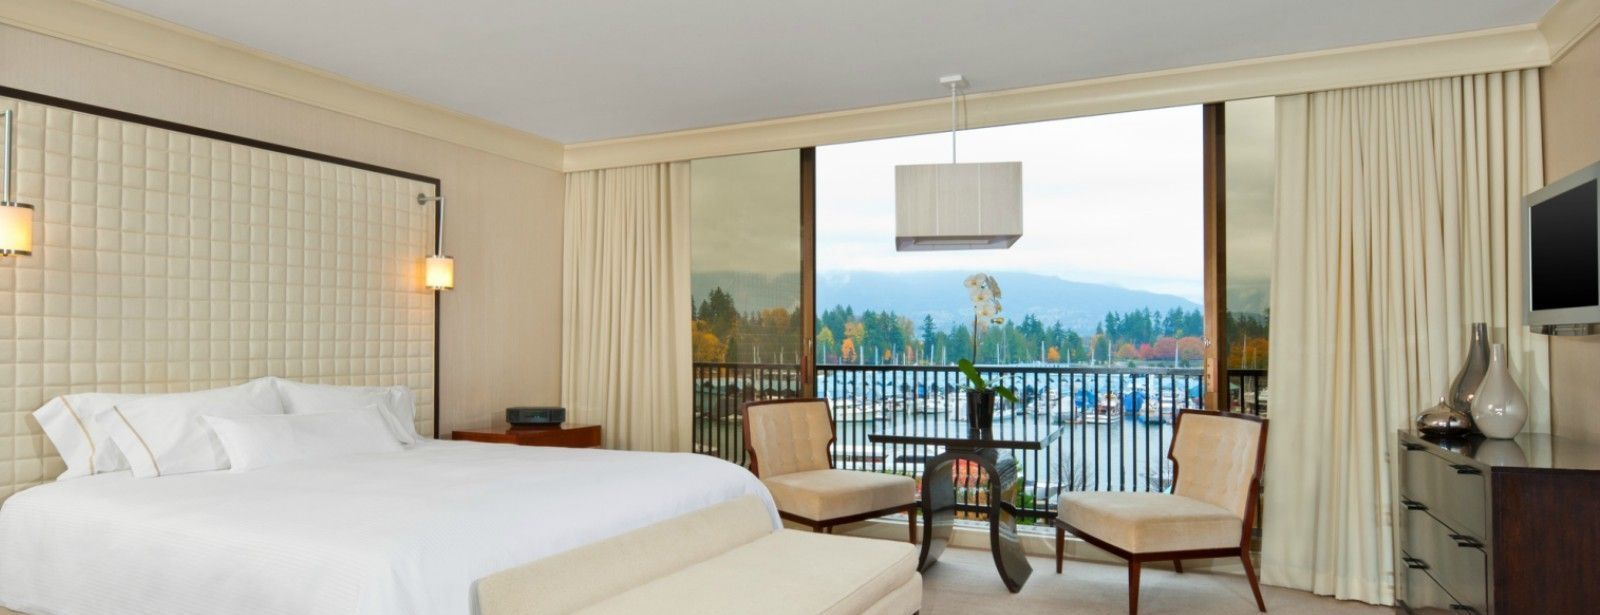 The Westin Bayshore, Vancouver - International Suite Bedroom